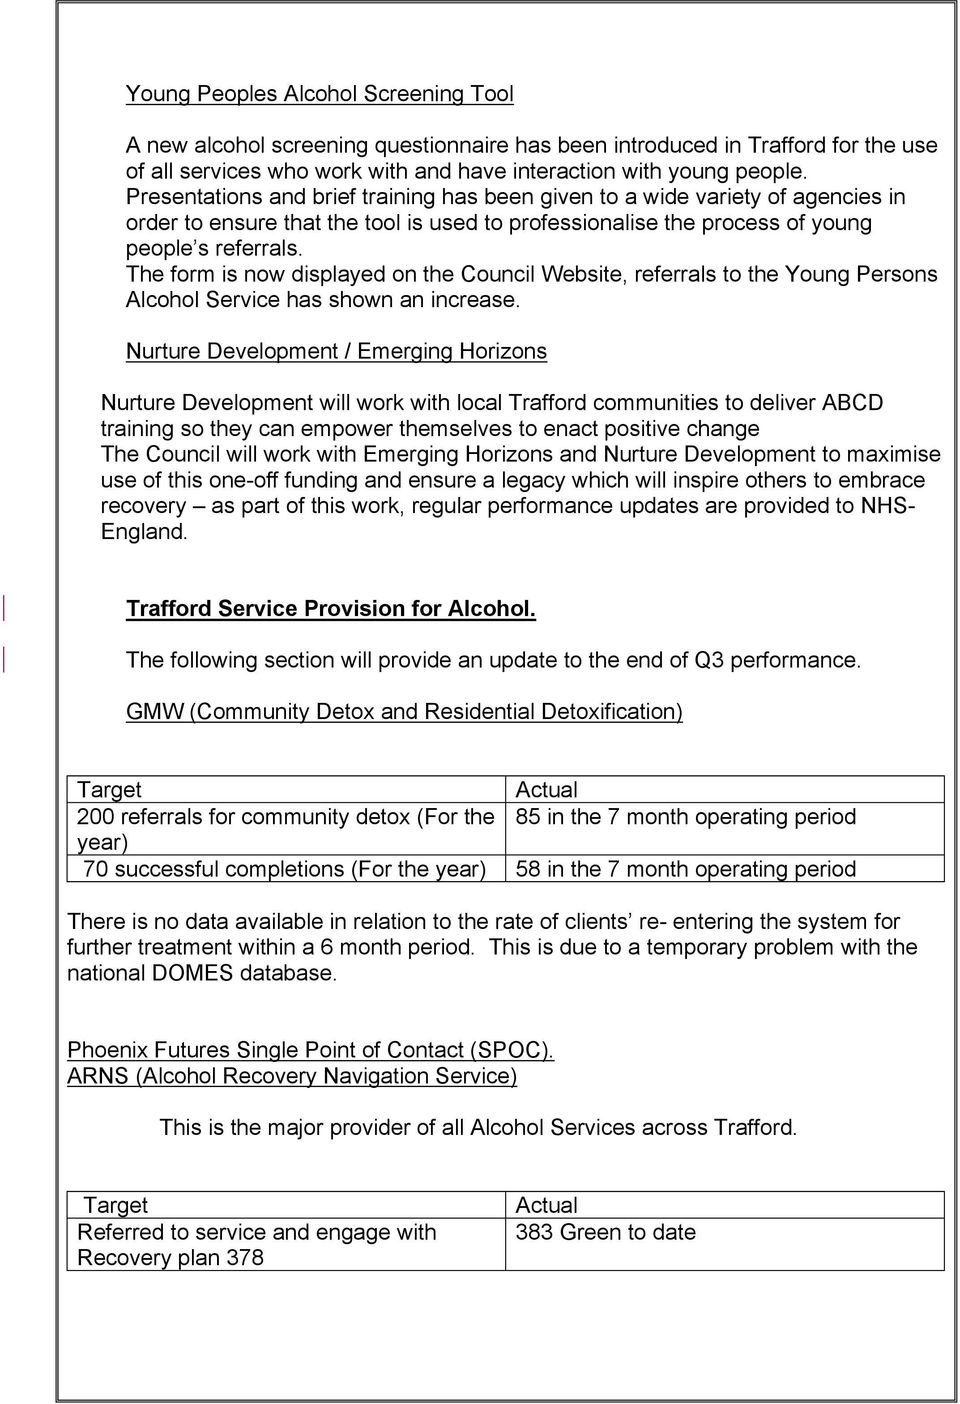 The form is now displayed on the Council Website, referrals to the Young Persons Alcohol Service has shown an increase.